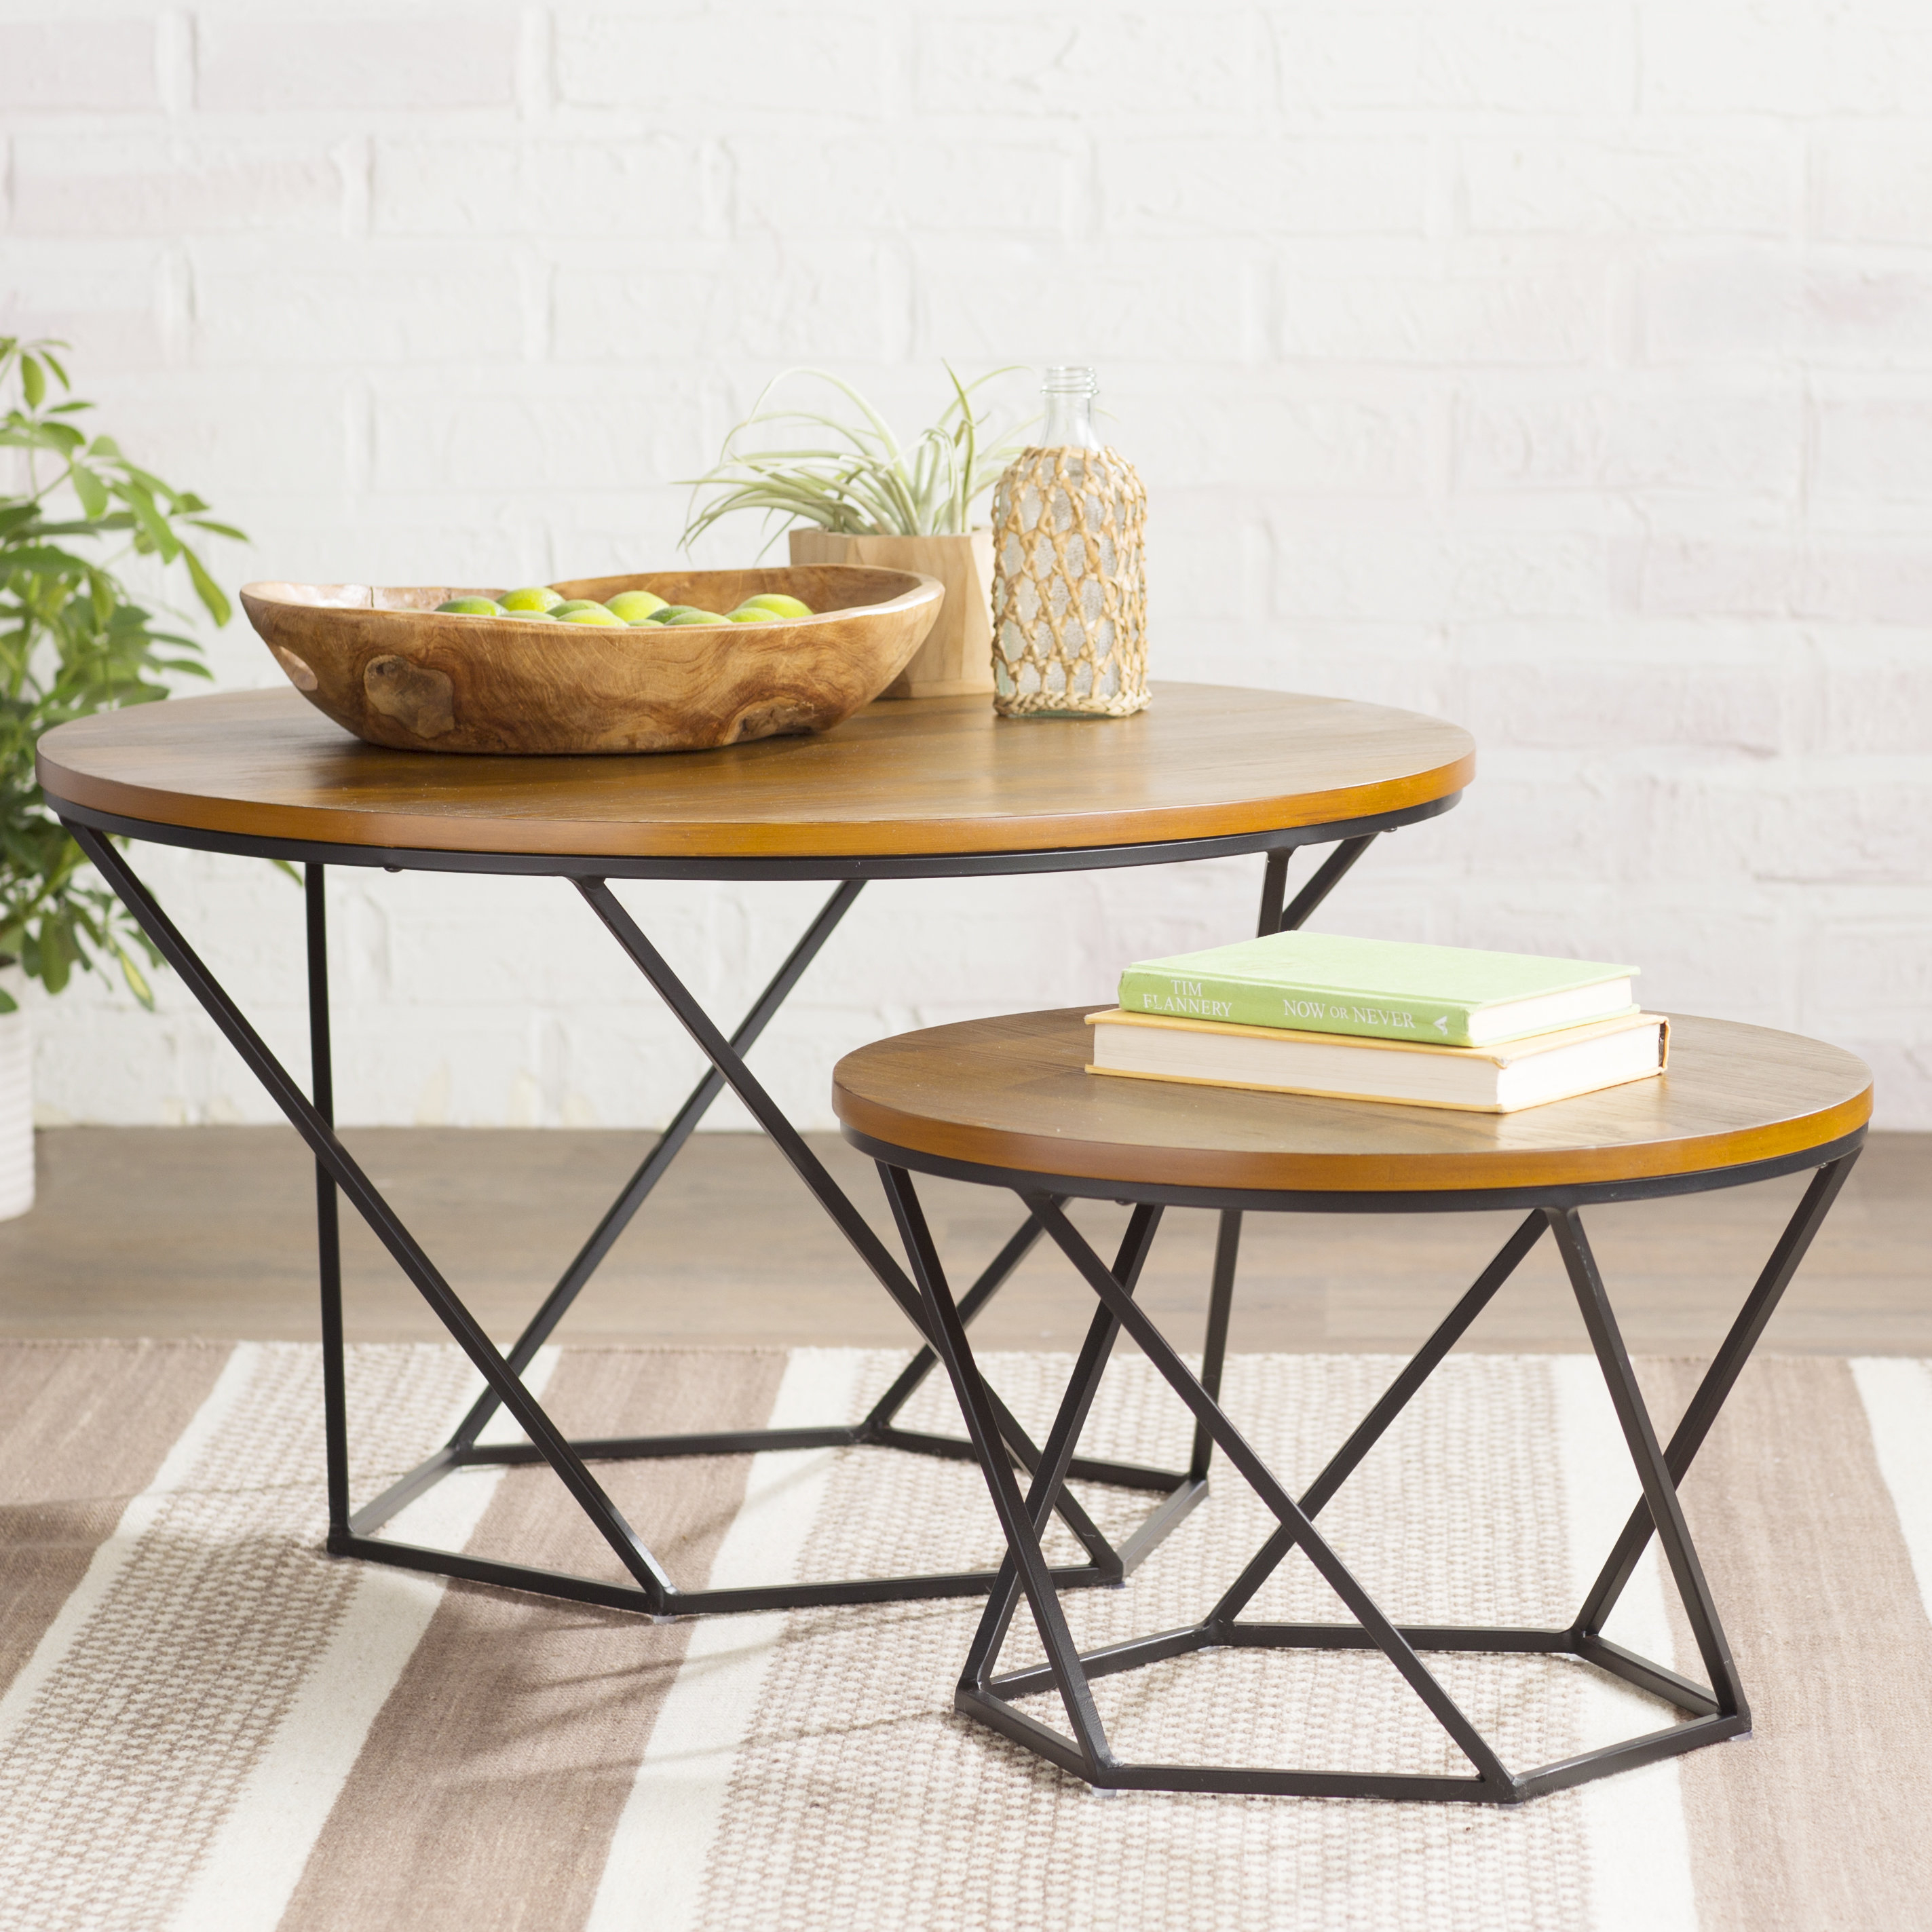 Brayden Studio Ahrens Geometric 2 Piece Coffee Table Set Reviews within proportions 2847 X 2847